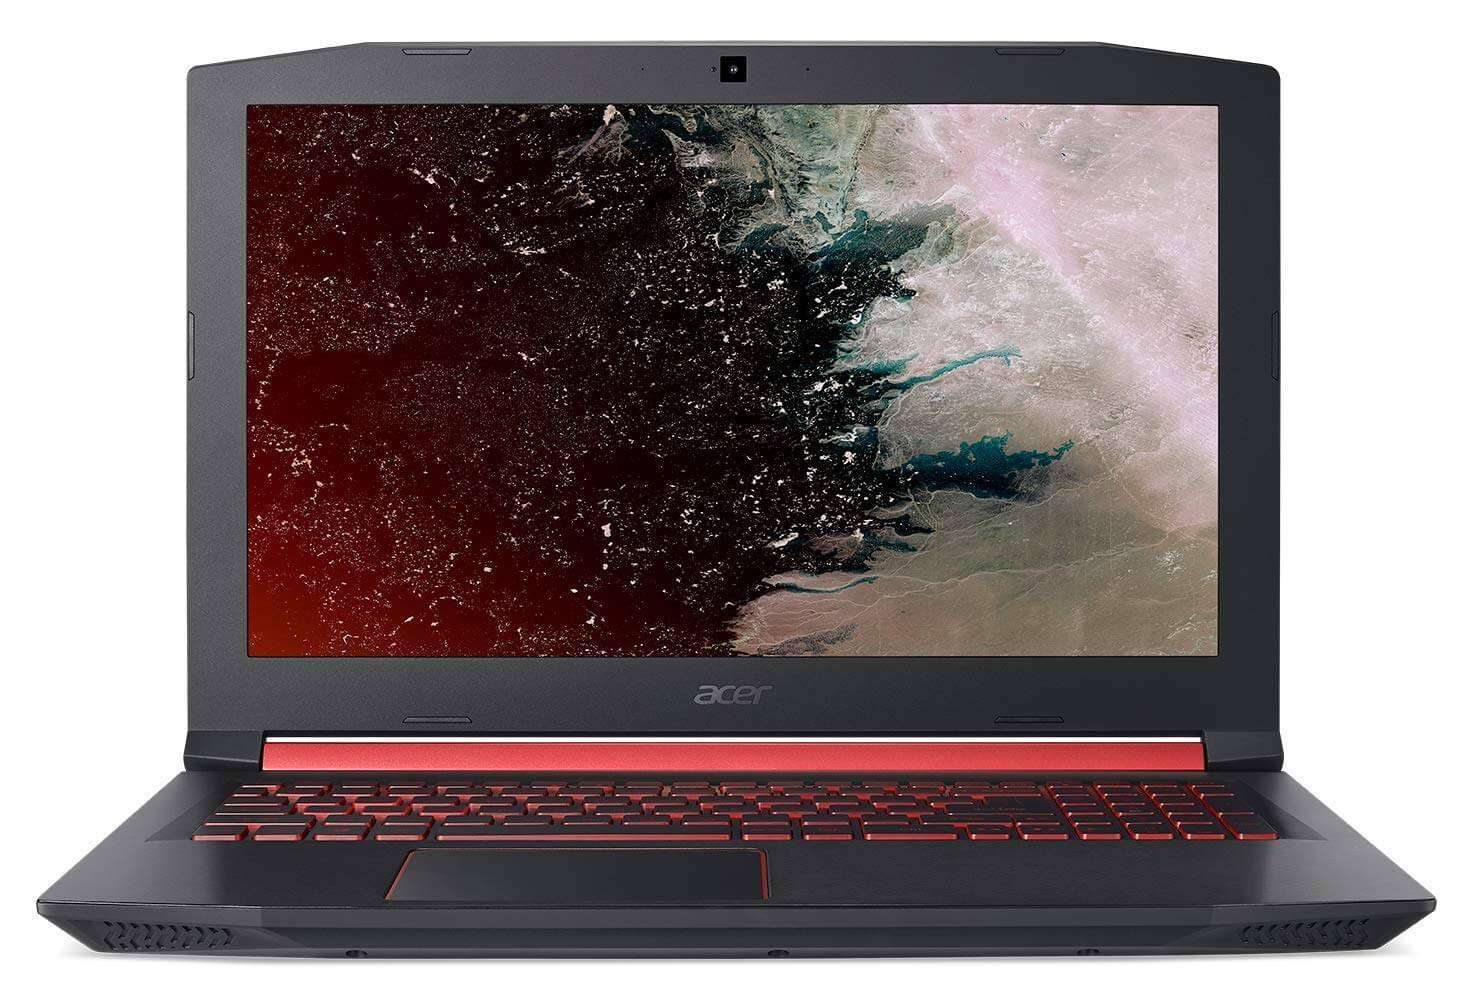 Acer NITRO 5 AN515-53-52FA Gaming Laptop With 15.6-Inch Display, Core i5-8300H Processor/8GB RAM/1TB HDD/4GB NVIDIA GeForce GTX 1050 Graphics Card Black